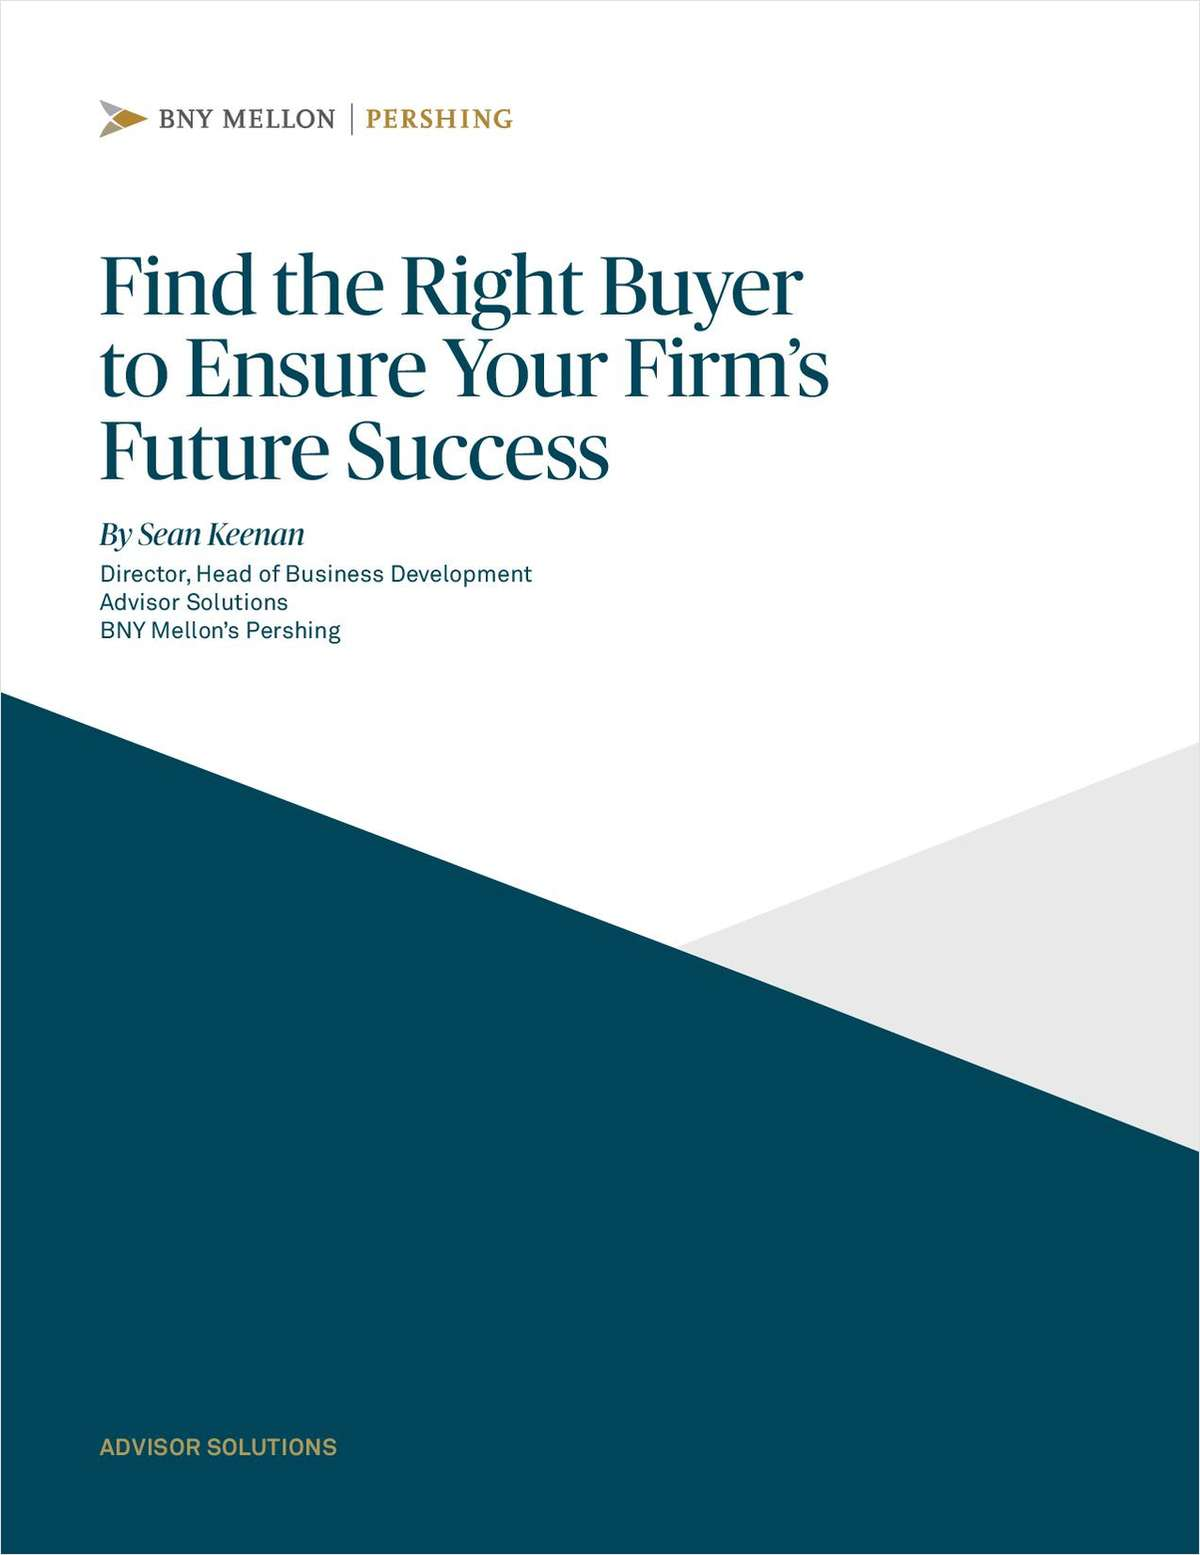 Find the Right Buyer to Ensure Your Firm's Future Success